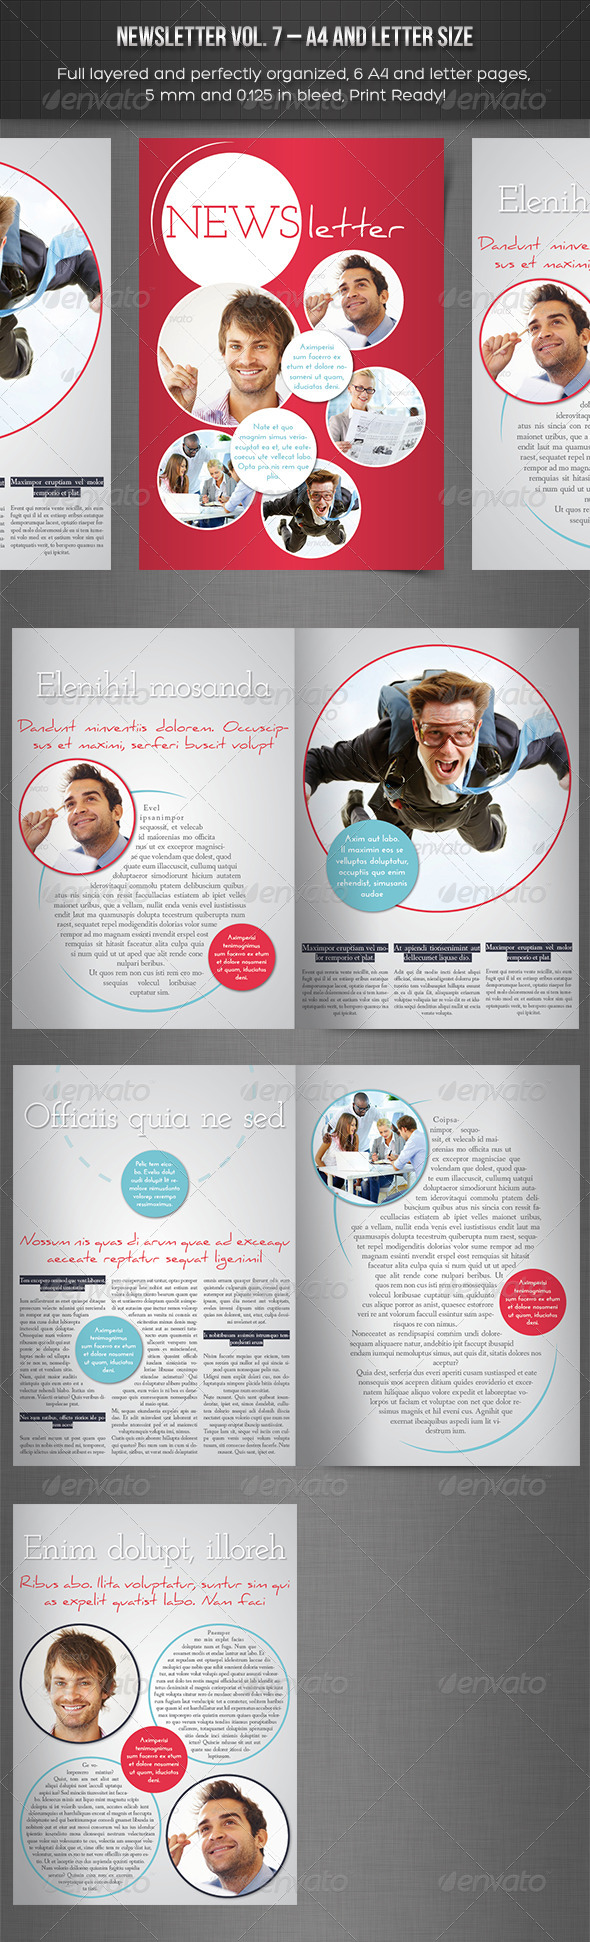 Newsletter Vol. 7  Indesign Template - Newsletters Print Templates